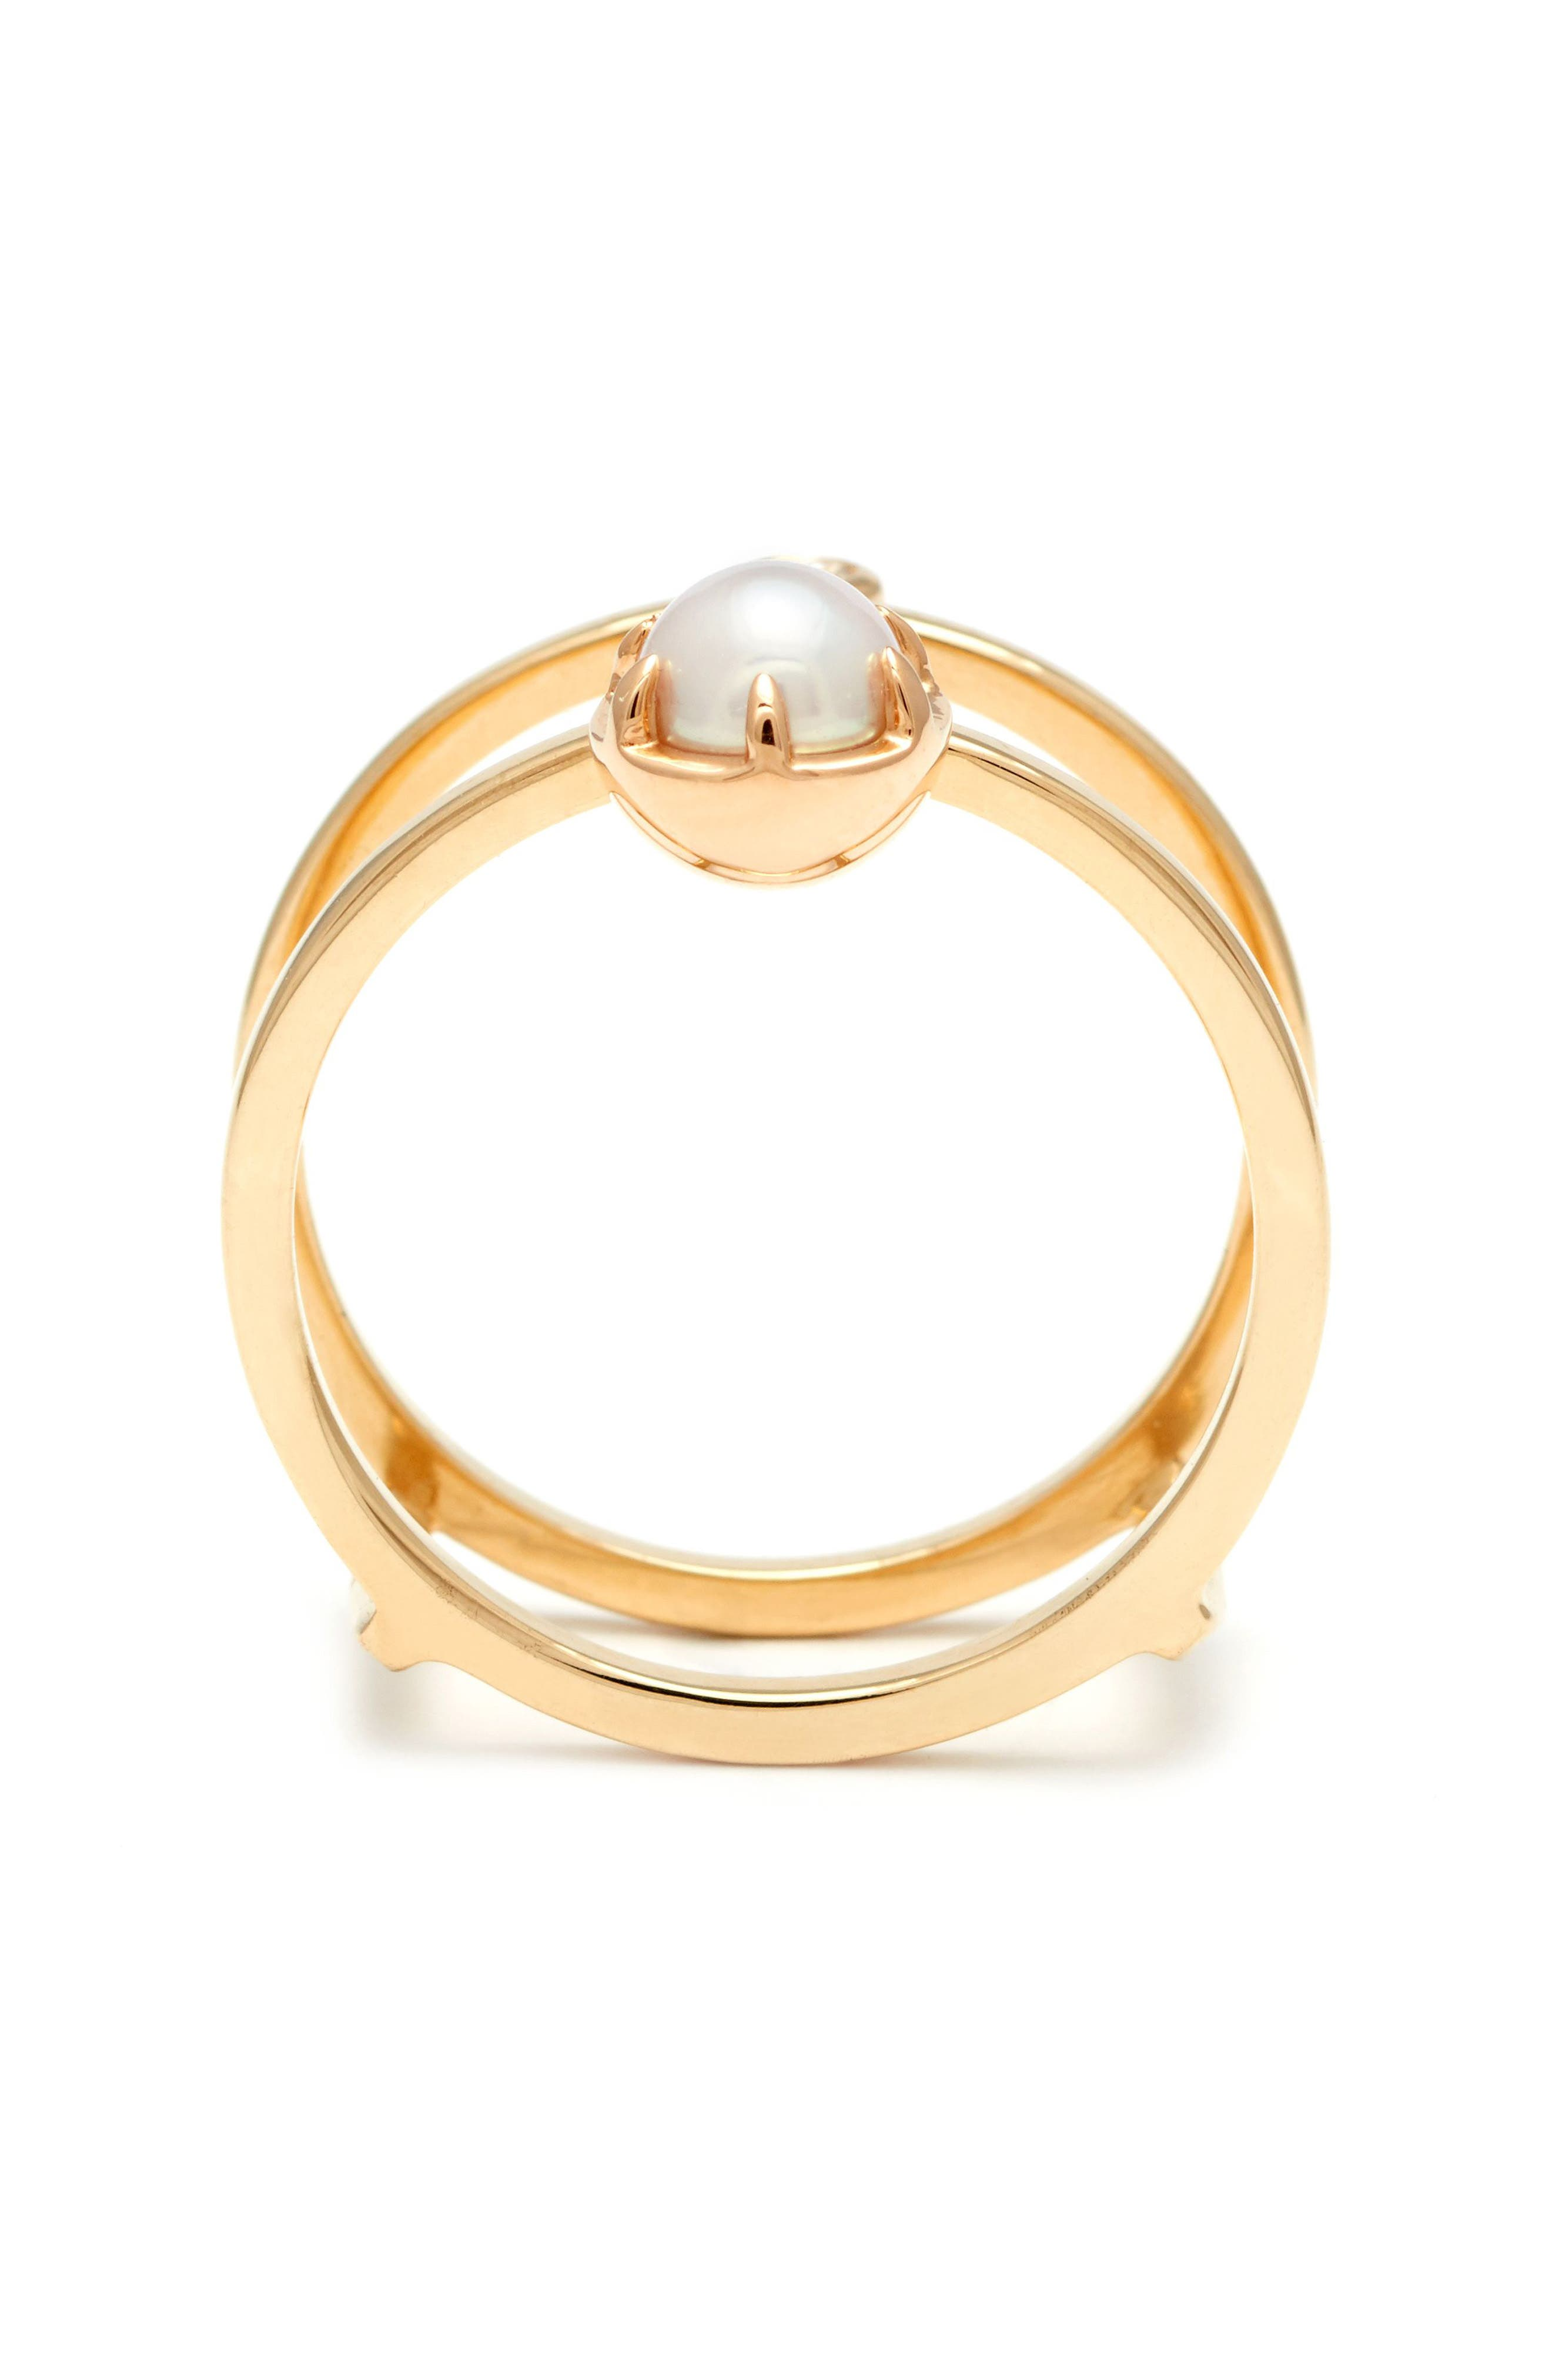 'Reverse Attelage' Double Band Pearl & Diamond Ring,                             Alternate thumbnail 2, color,                             YELLOW/ GOLD/ WHITE